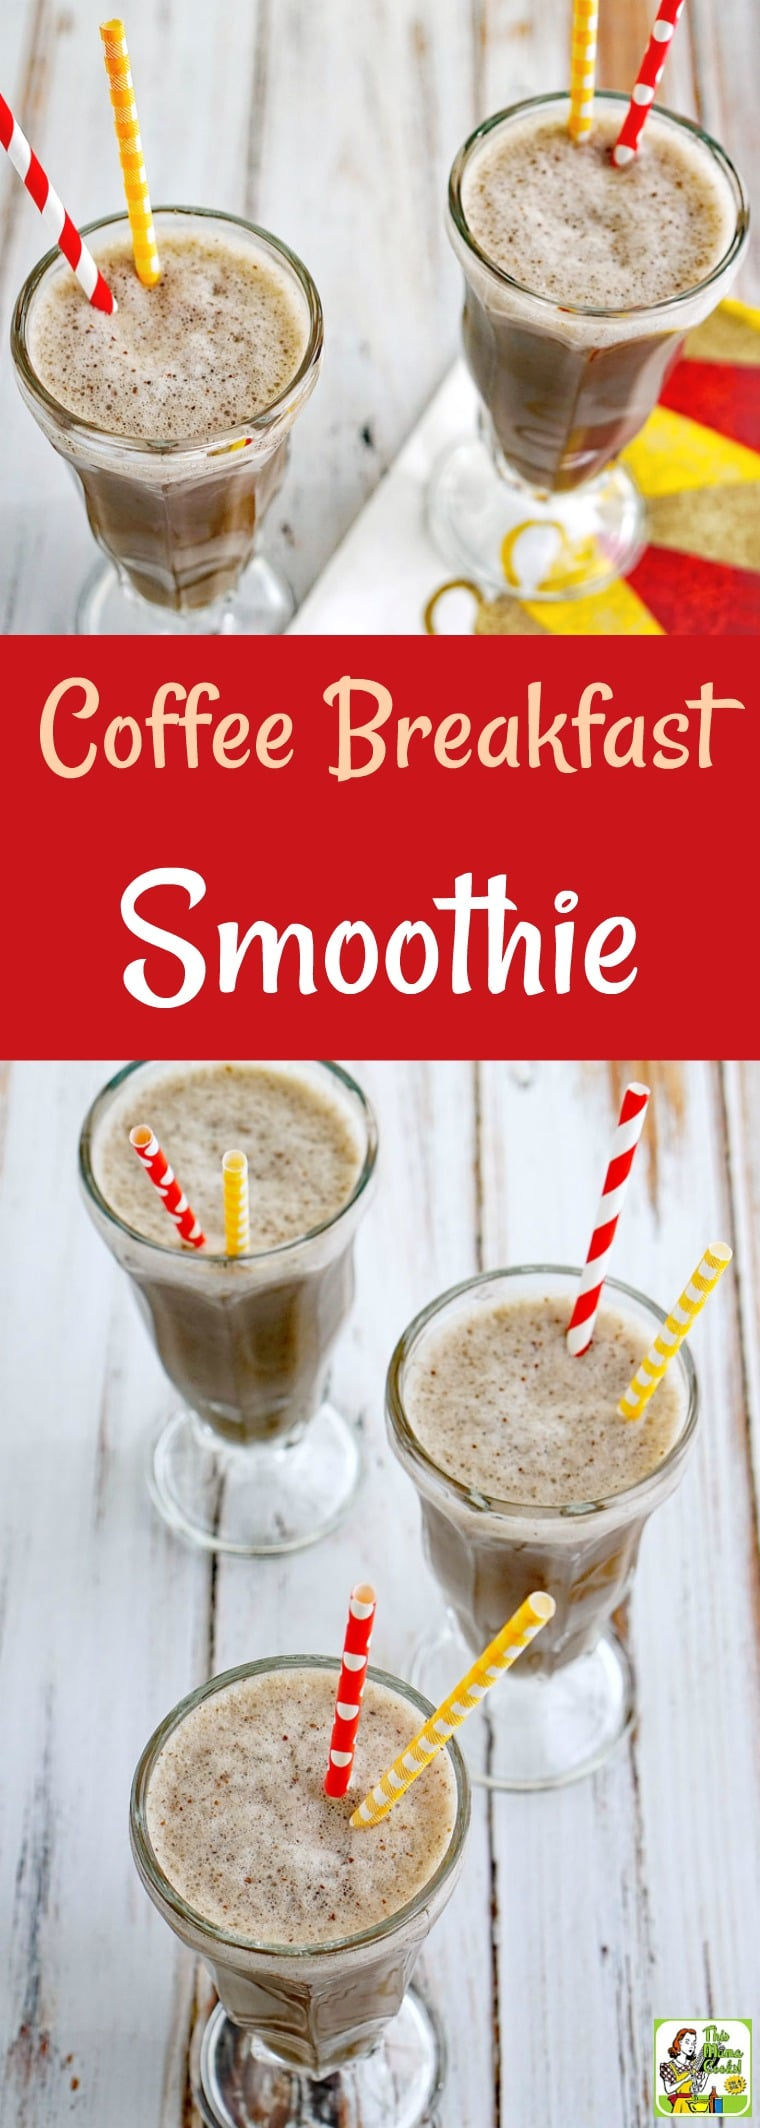 This Coffee Breakfast Smoothie recipe is an easy way to start your day with a boost of chocolate flavored coffee, almond milk, and cherries! This easy and dairy free coffee smoothie recipe makes a healthy afternoon snack or post-workout drink. #coffee #shakes #drink #smoothies #smoothiesrecipes #dairyfree #almondmilk #cherries #healthydrinks #healthydrinksrecipe #lowcalorie #breakfast #icedcoffee #recipe #easy #recipeoftheday #healthyrecipes #glutenfree #easyrecipes #snacks #lowcaloriesnacks